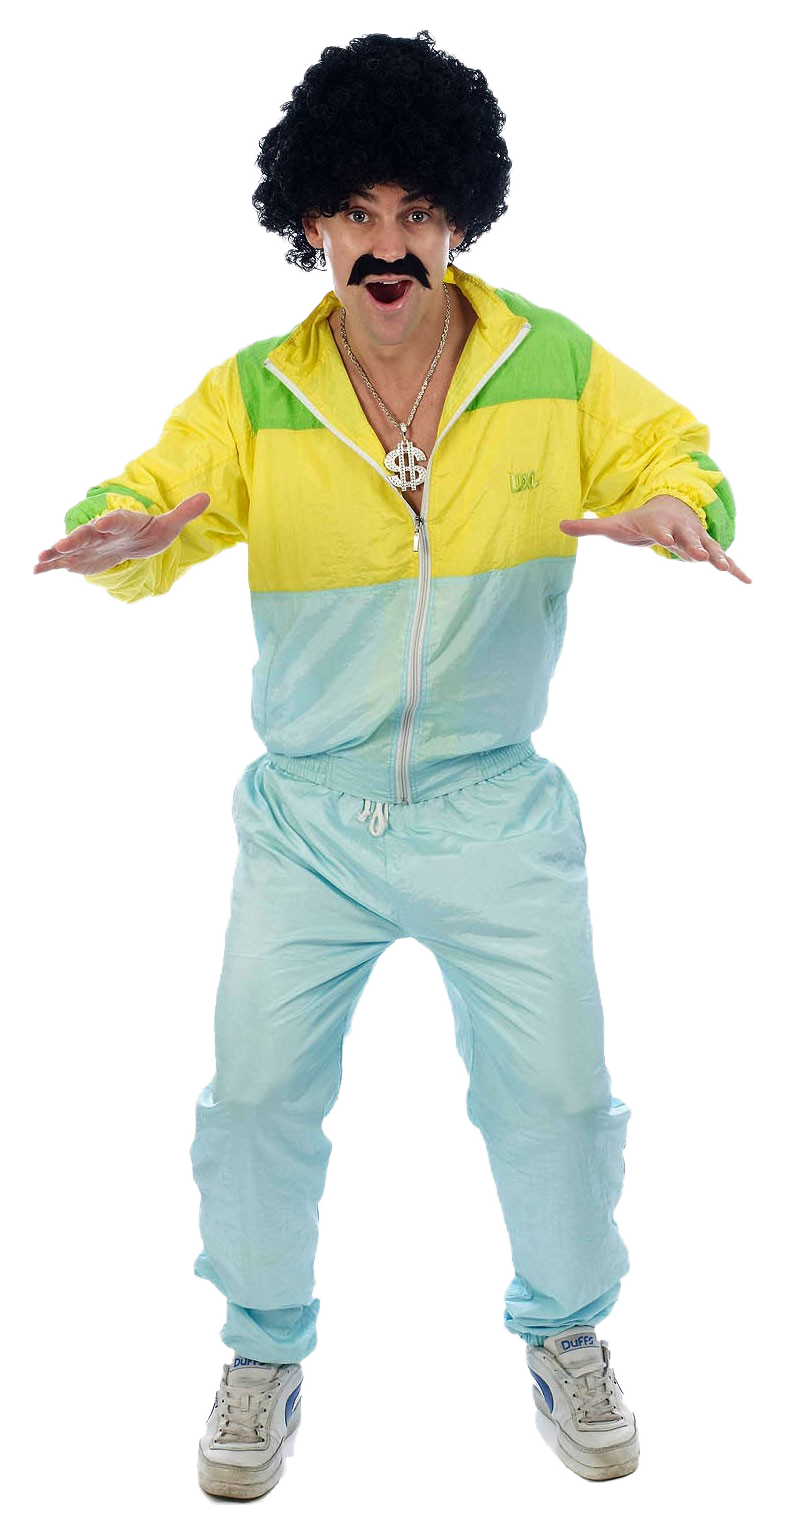 80s Shellsuit Scouser Costume | Stag Party Costumes | Mega ...